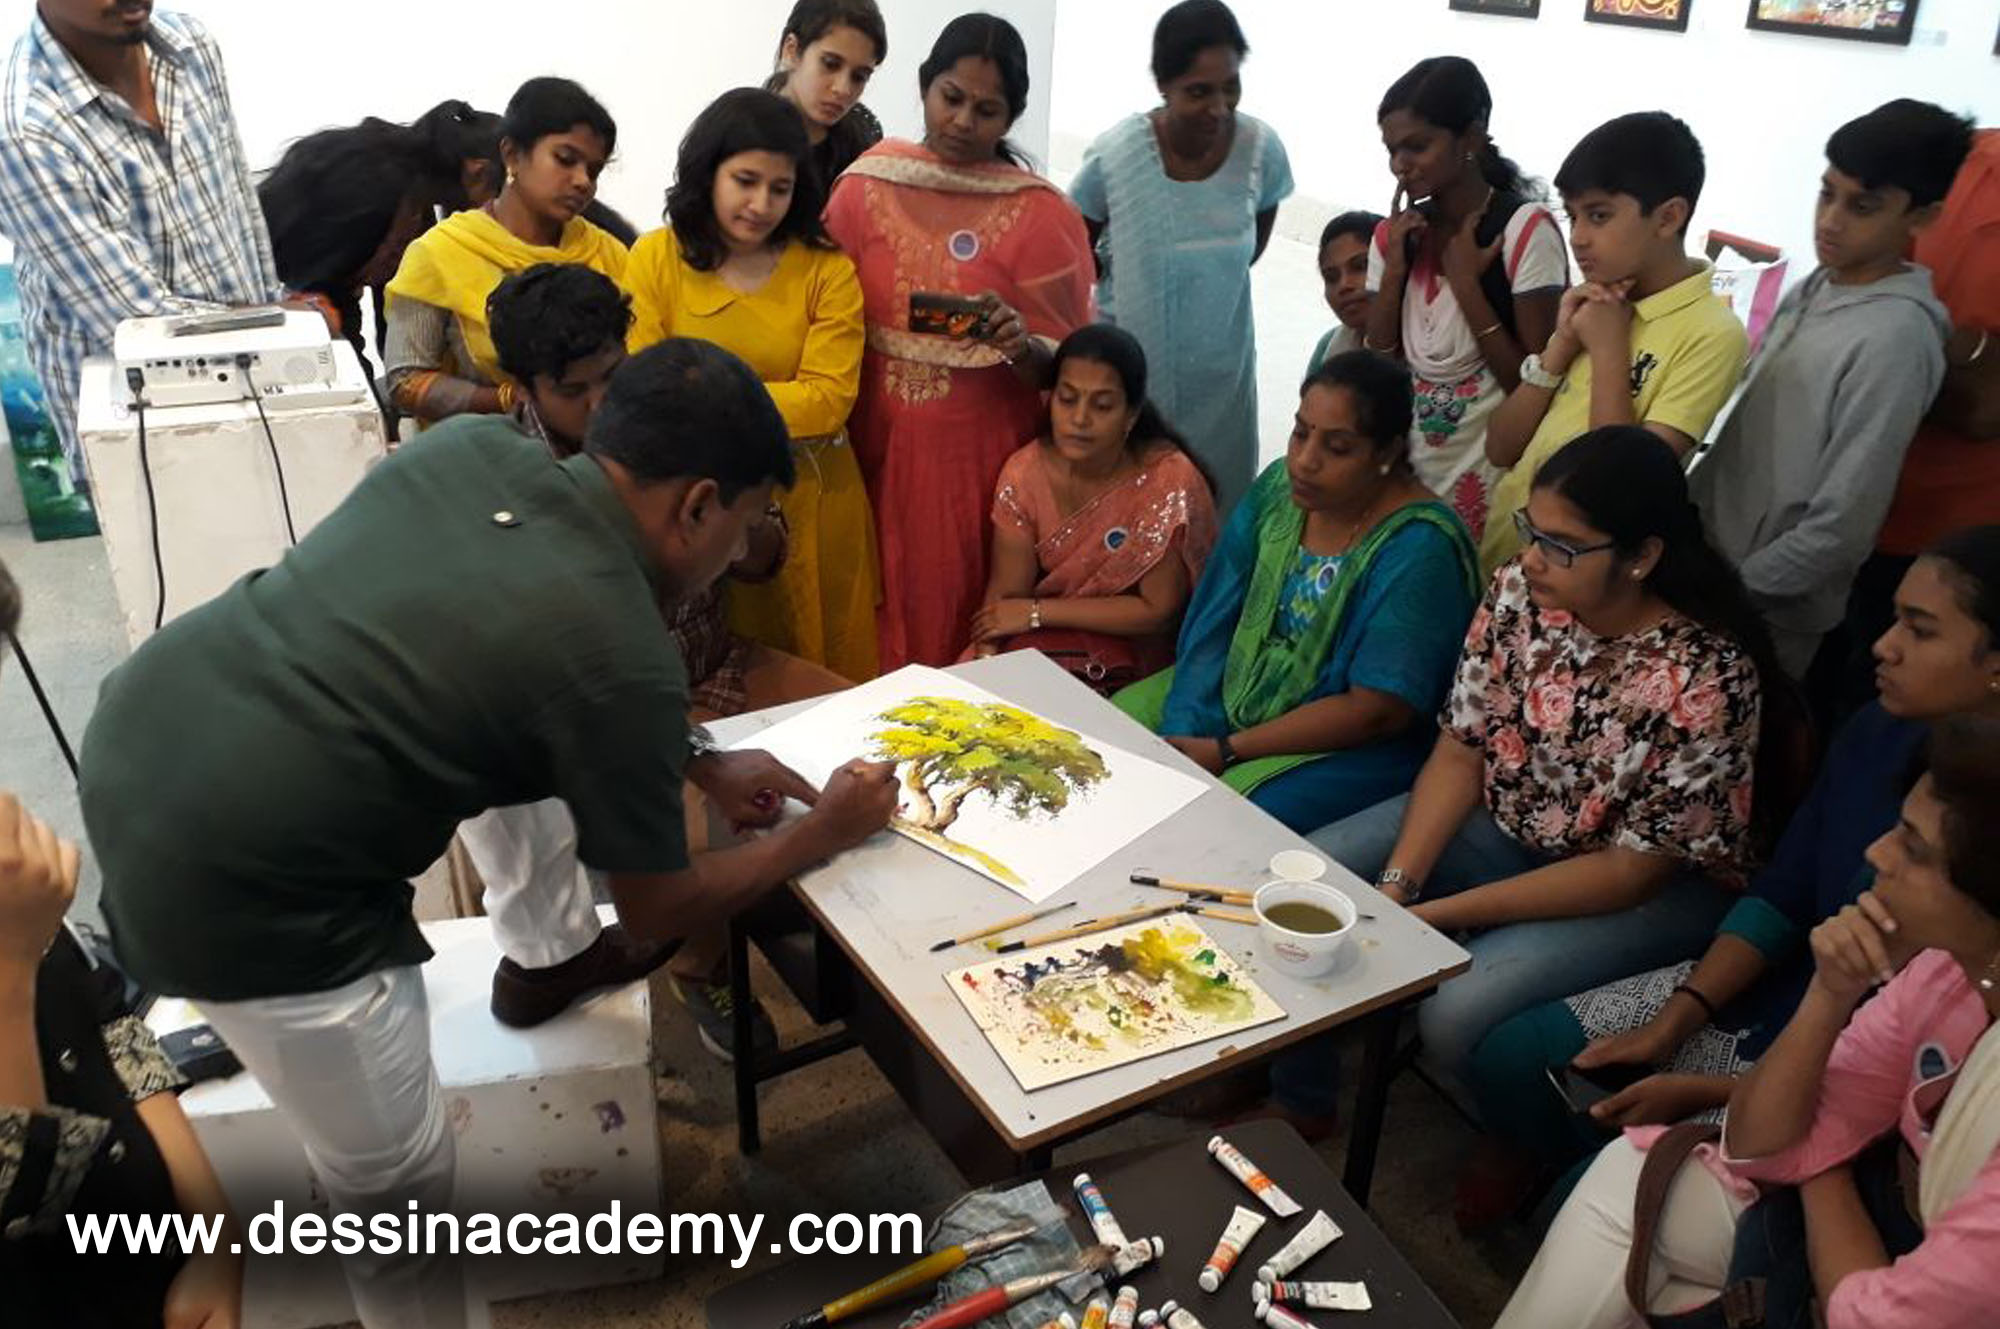 Dessin School of arts Event Gallery 6, oil painting Coaching for adults in AdyarTime kids Pre-School